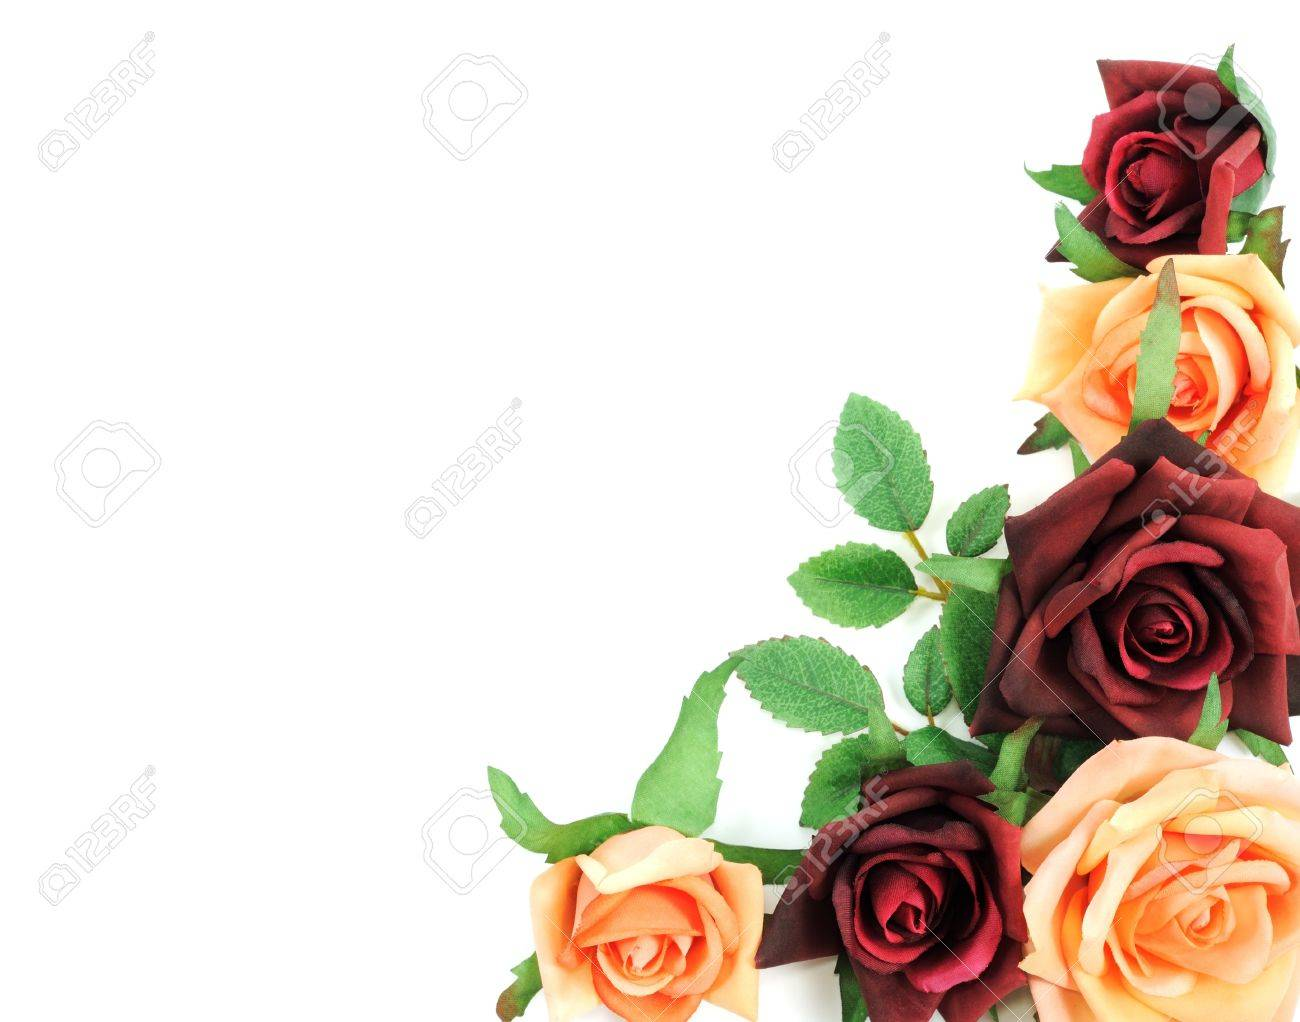 Batch of colorful roses on a white background Stock Photo - 13522645